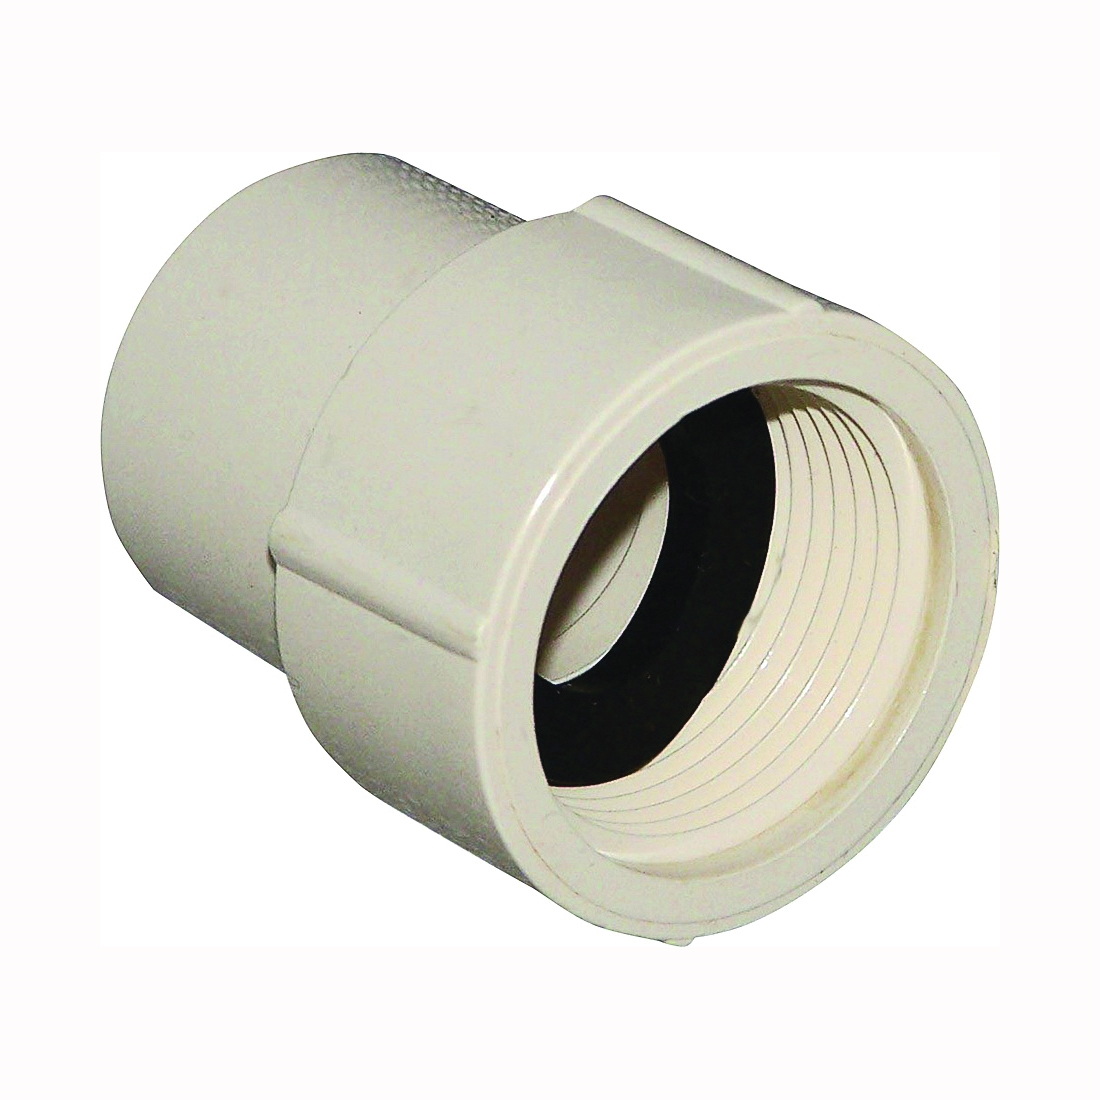 Picture of GENOVA 500 50307 Pipe Adapter, 3/4 in, Slip x FIP, CPVC, 100 psi Pressure